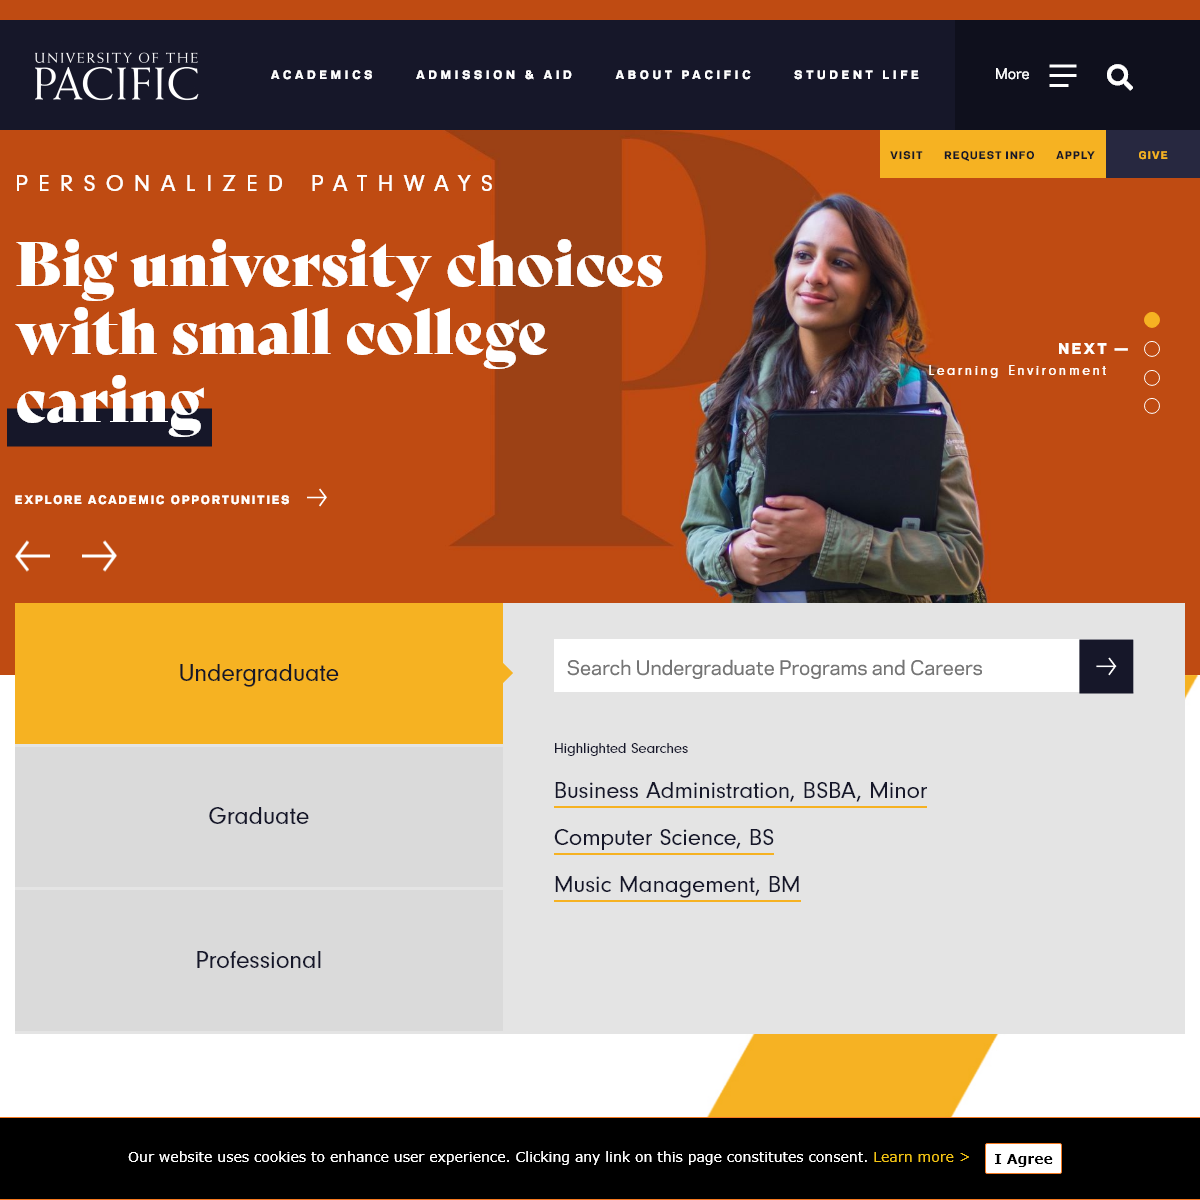 University of the Pacific - Experience-driven Education